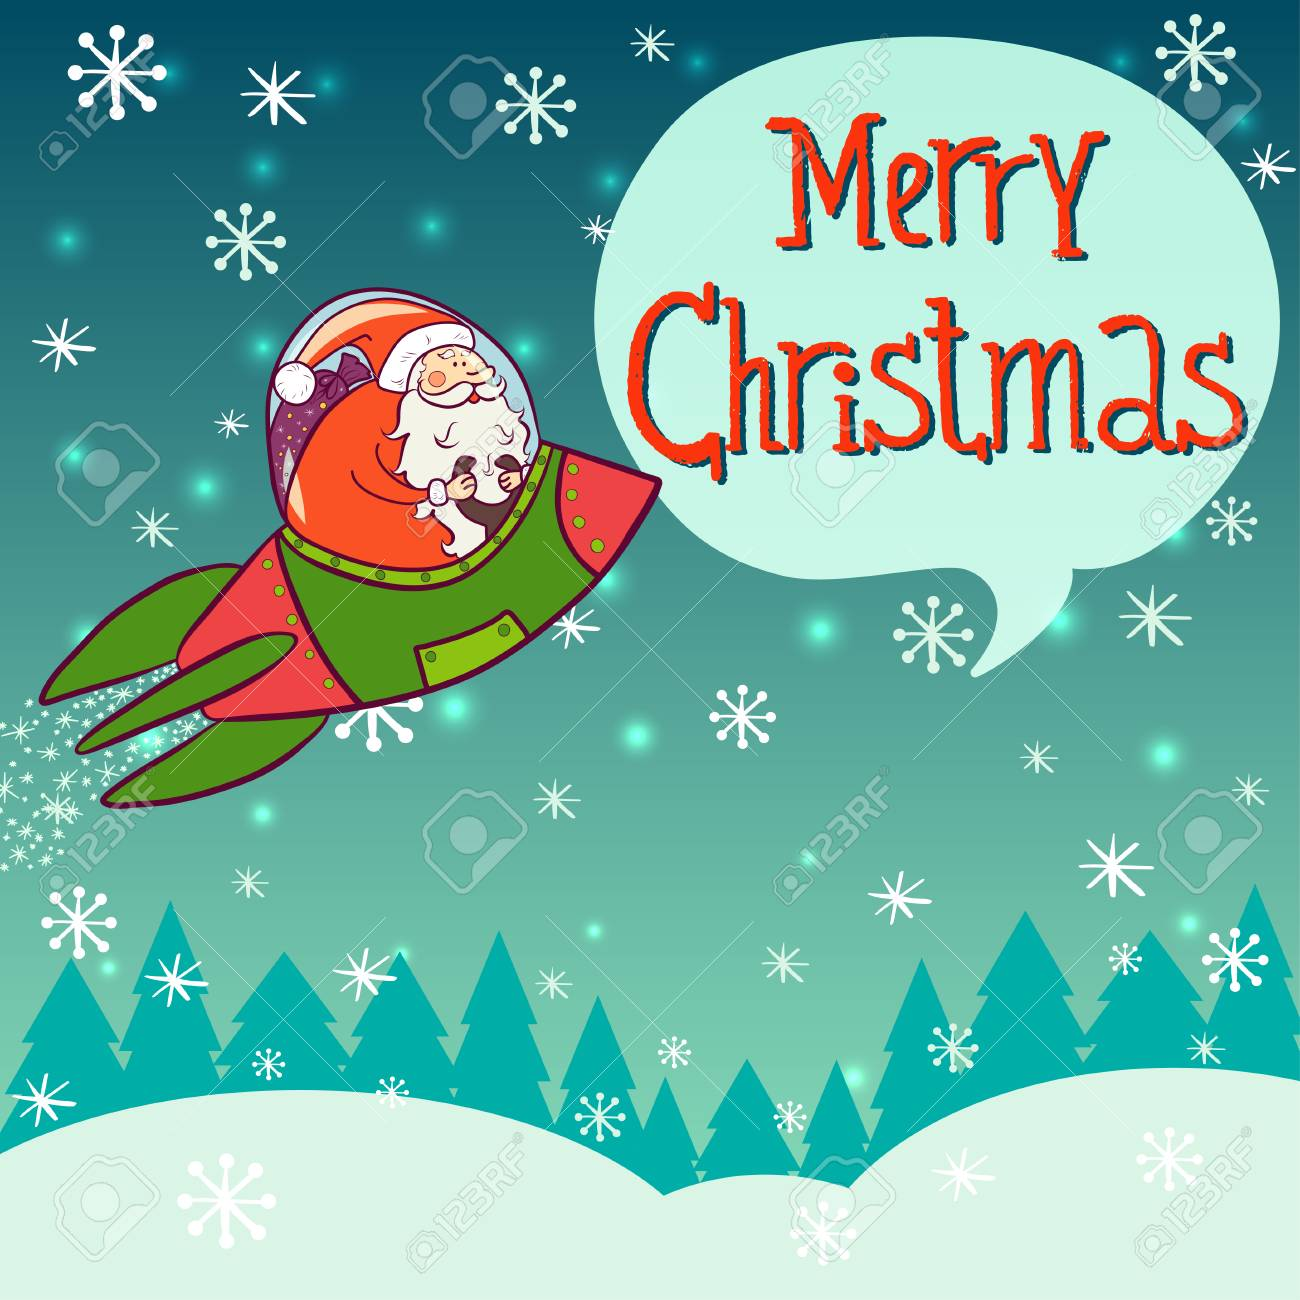 christmas invitation or greeting card template with funny cartoon santa claus flying in space rocket